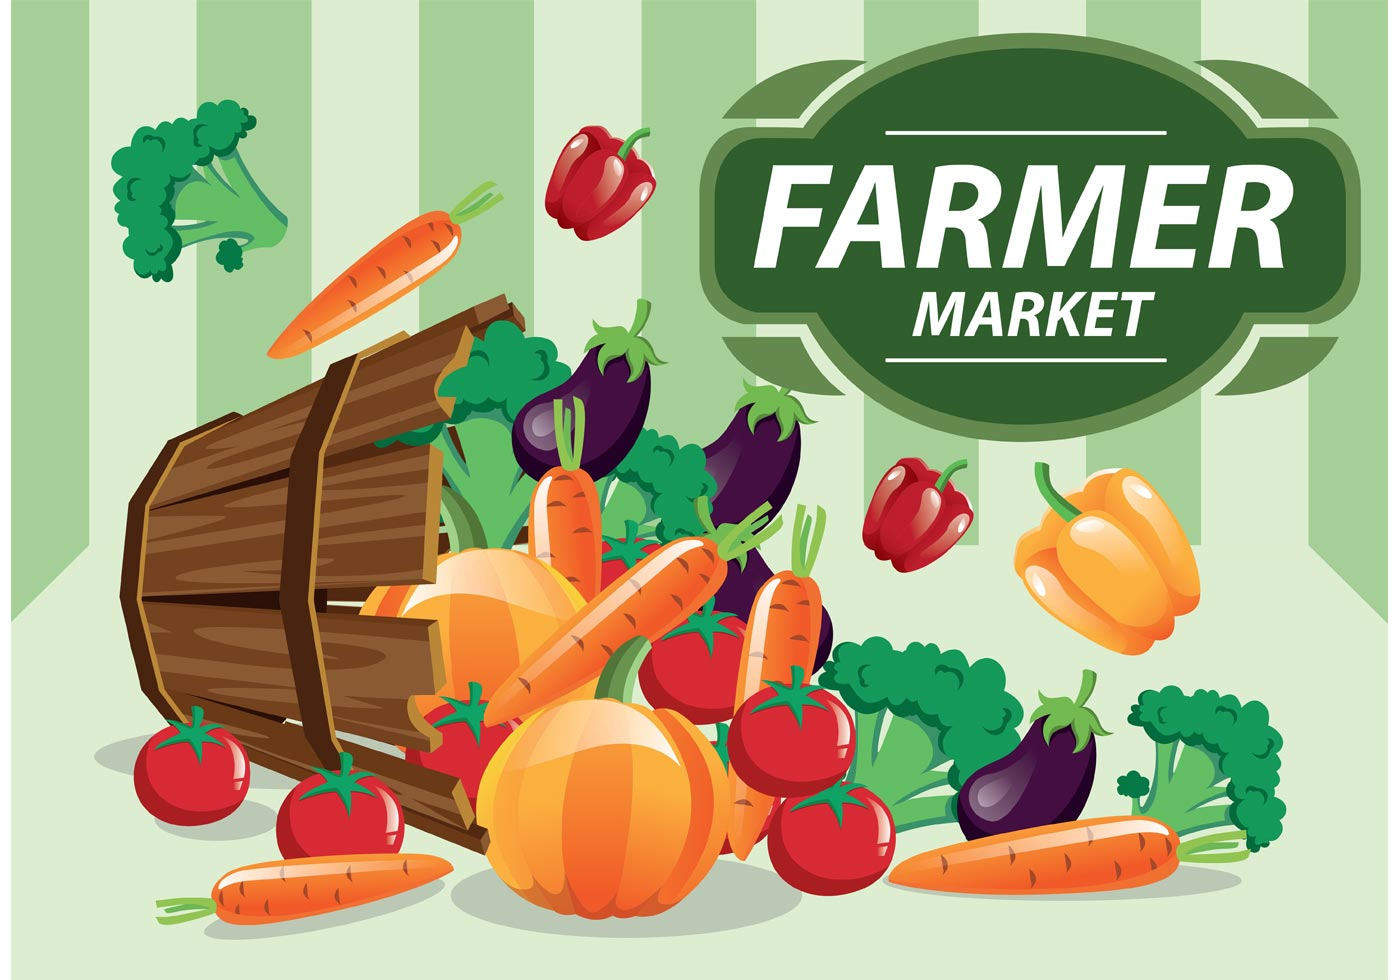 farmers-market-vector-produce.jpg